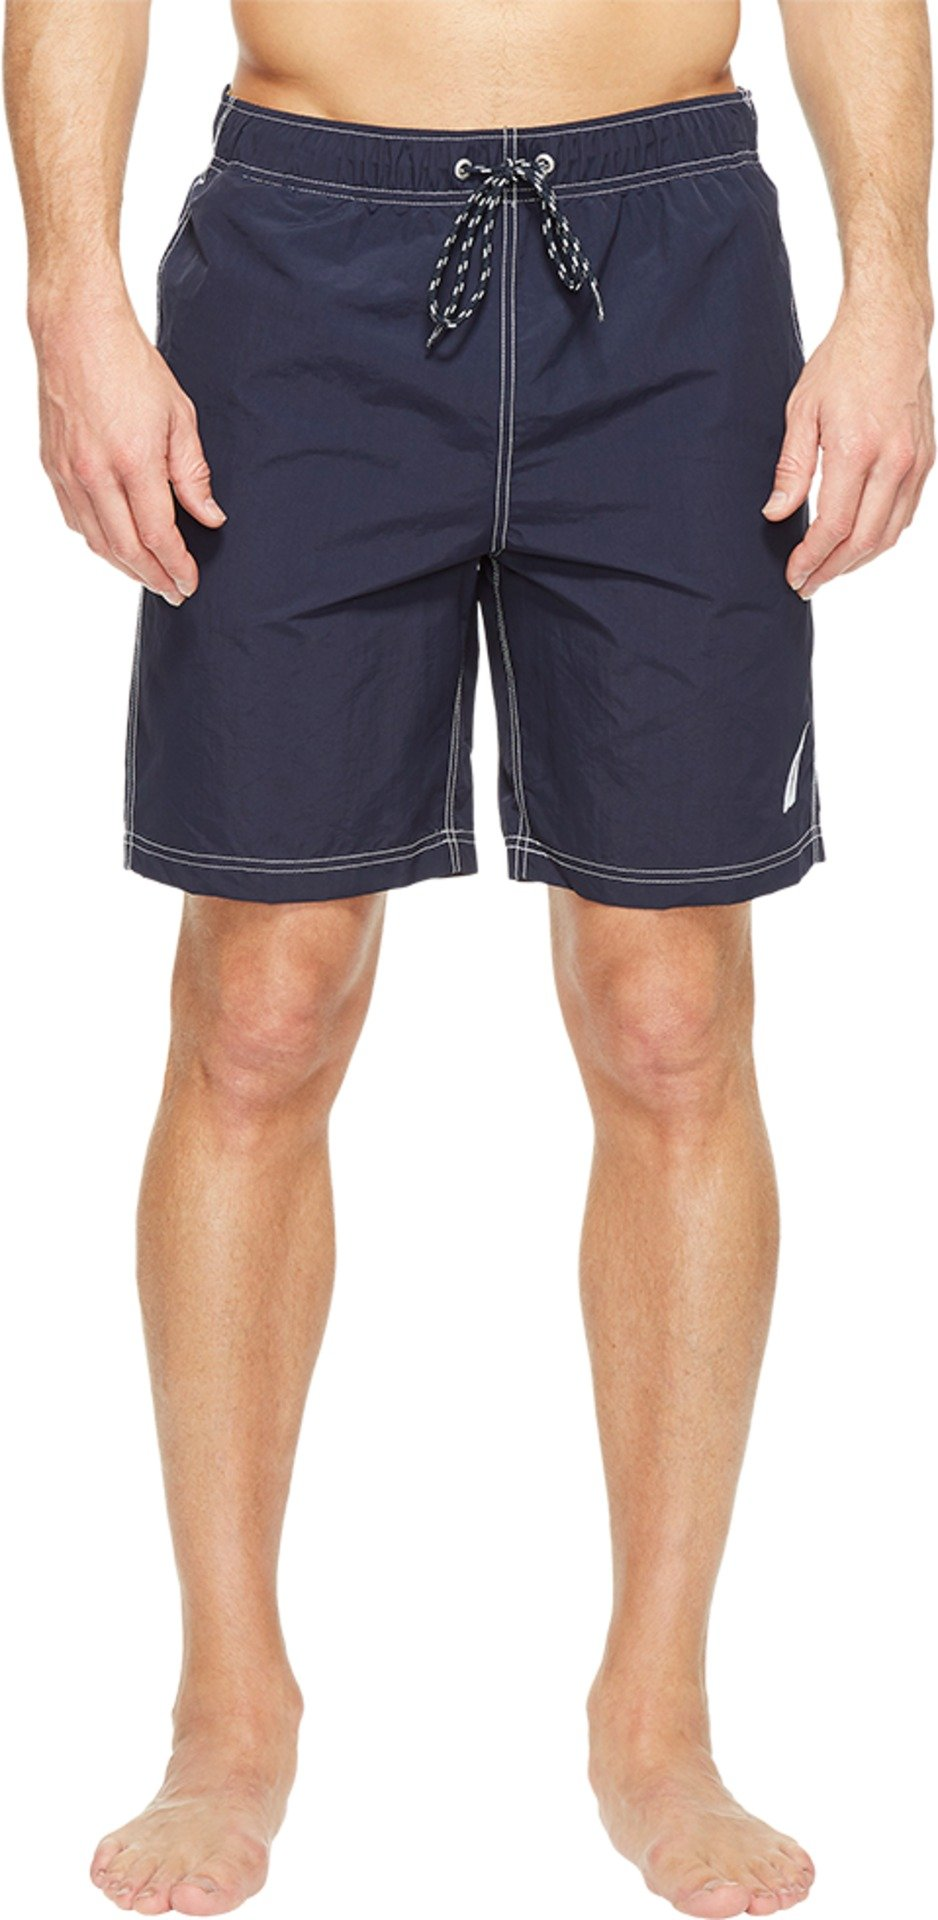 Nautica Men's Standard Solid Quick Dry Classic Logo Swim Trunk, Navy, Medium by Nautica